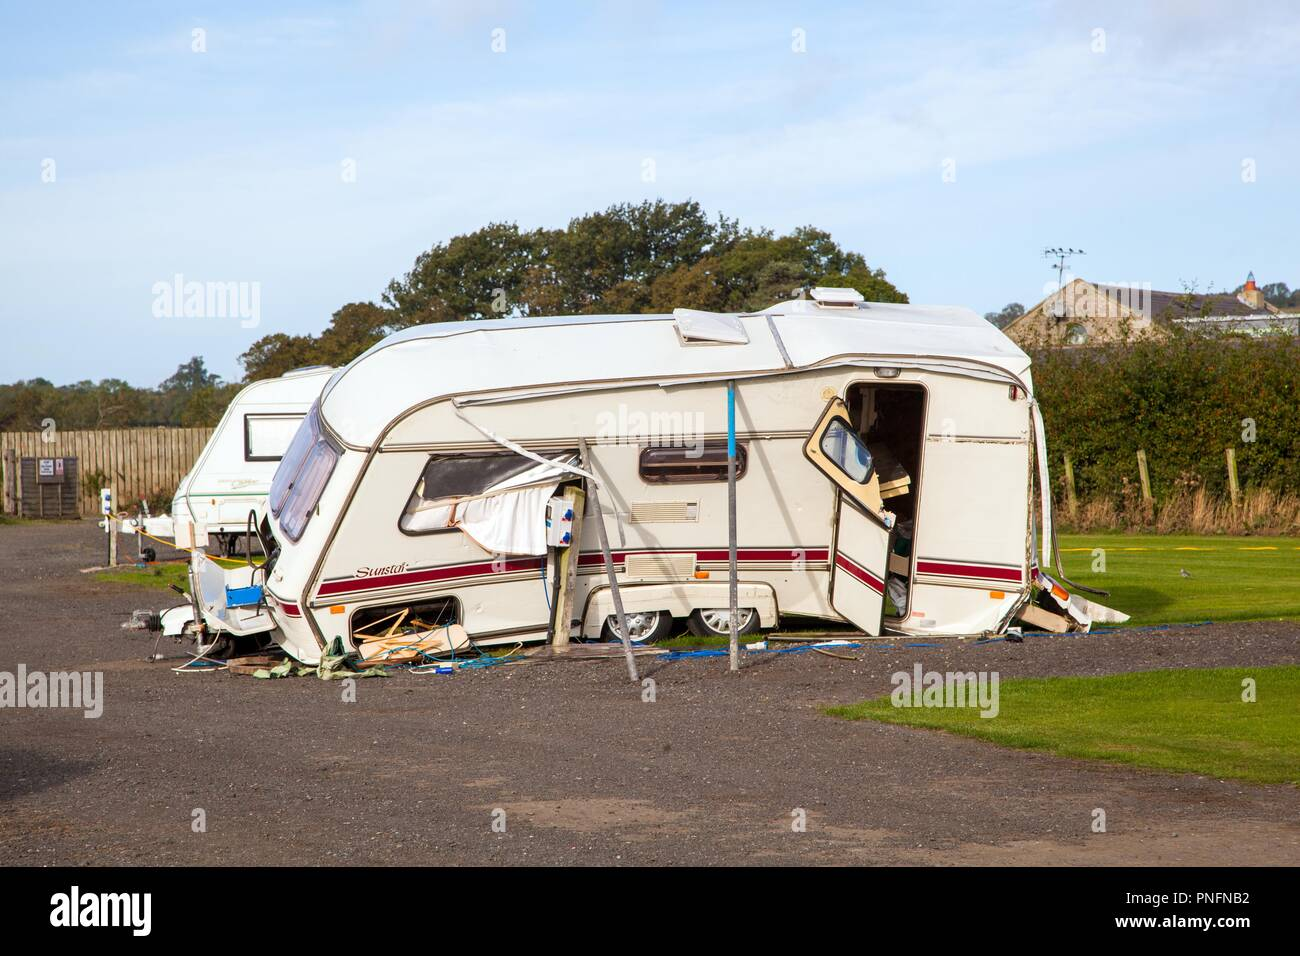 Alnwick, Northumberland. 19th September2018. UK Weather: Touring caravan blown over and wrecked in high winds during storm Ali 19th September 2018 at Alnwick Northumberland England UK Credit: Nick Hatton/Alamy Live News - Stock Image